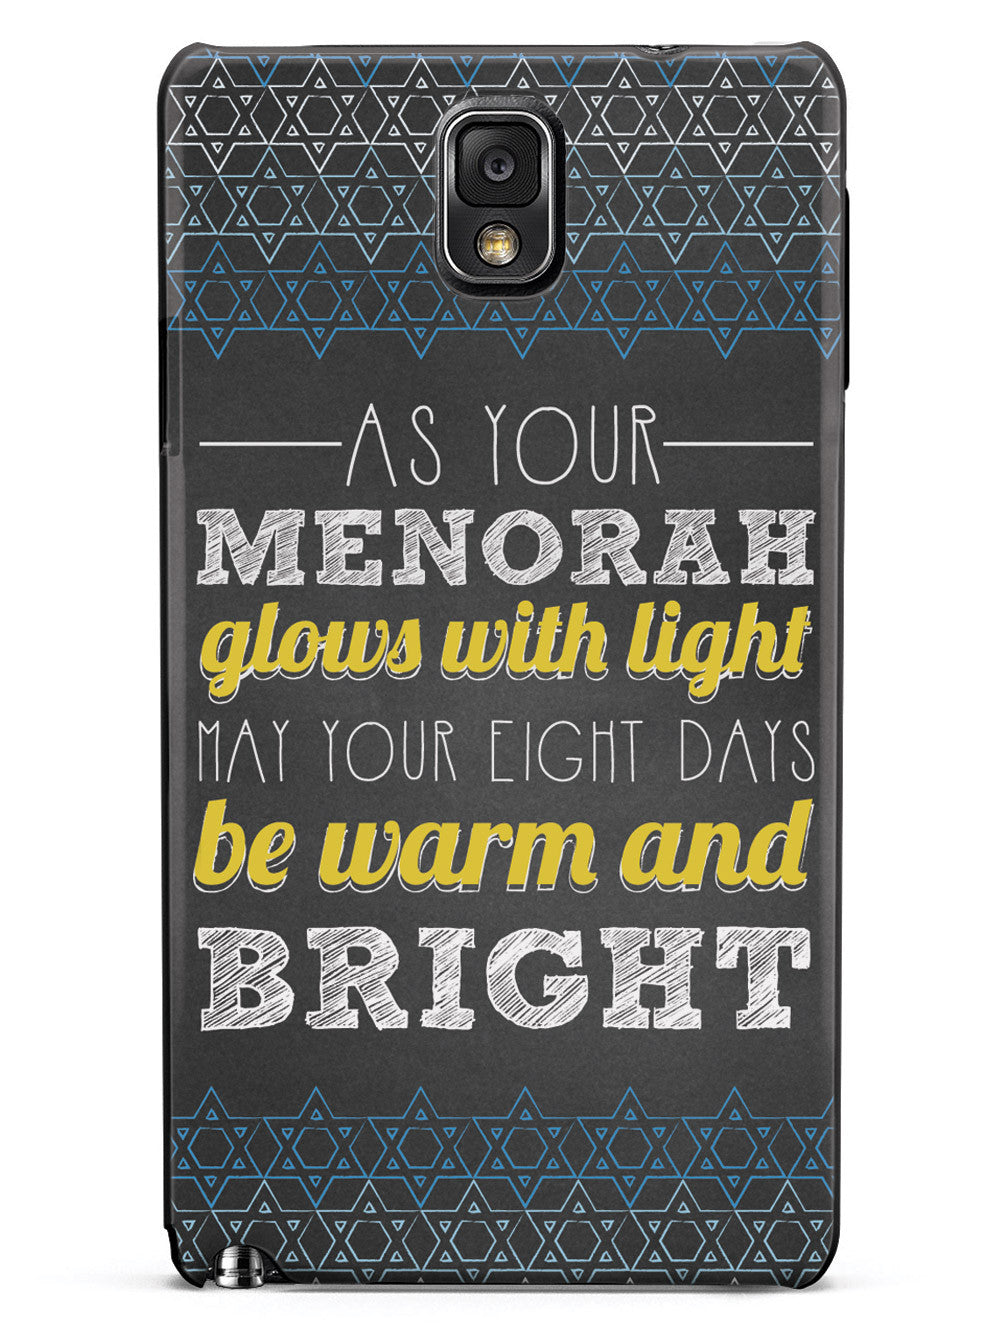 May Your Eight Days Be Warm and Bright - Hanukkah Case